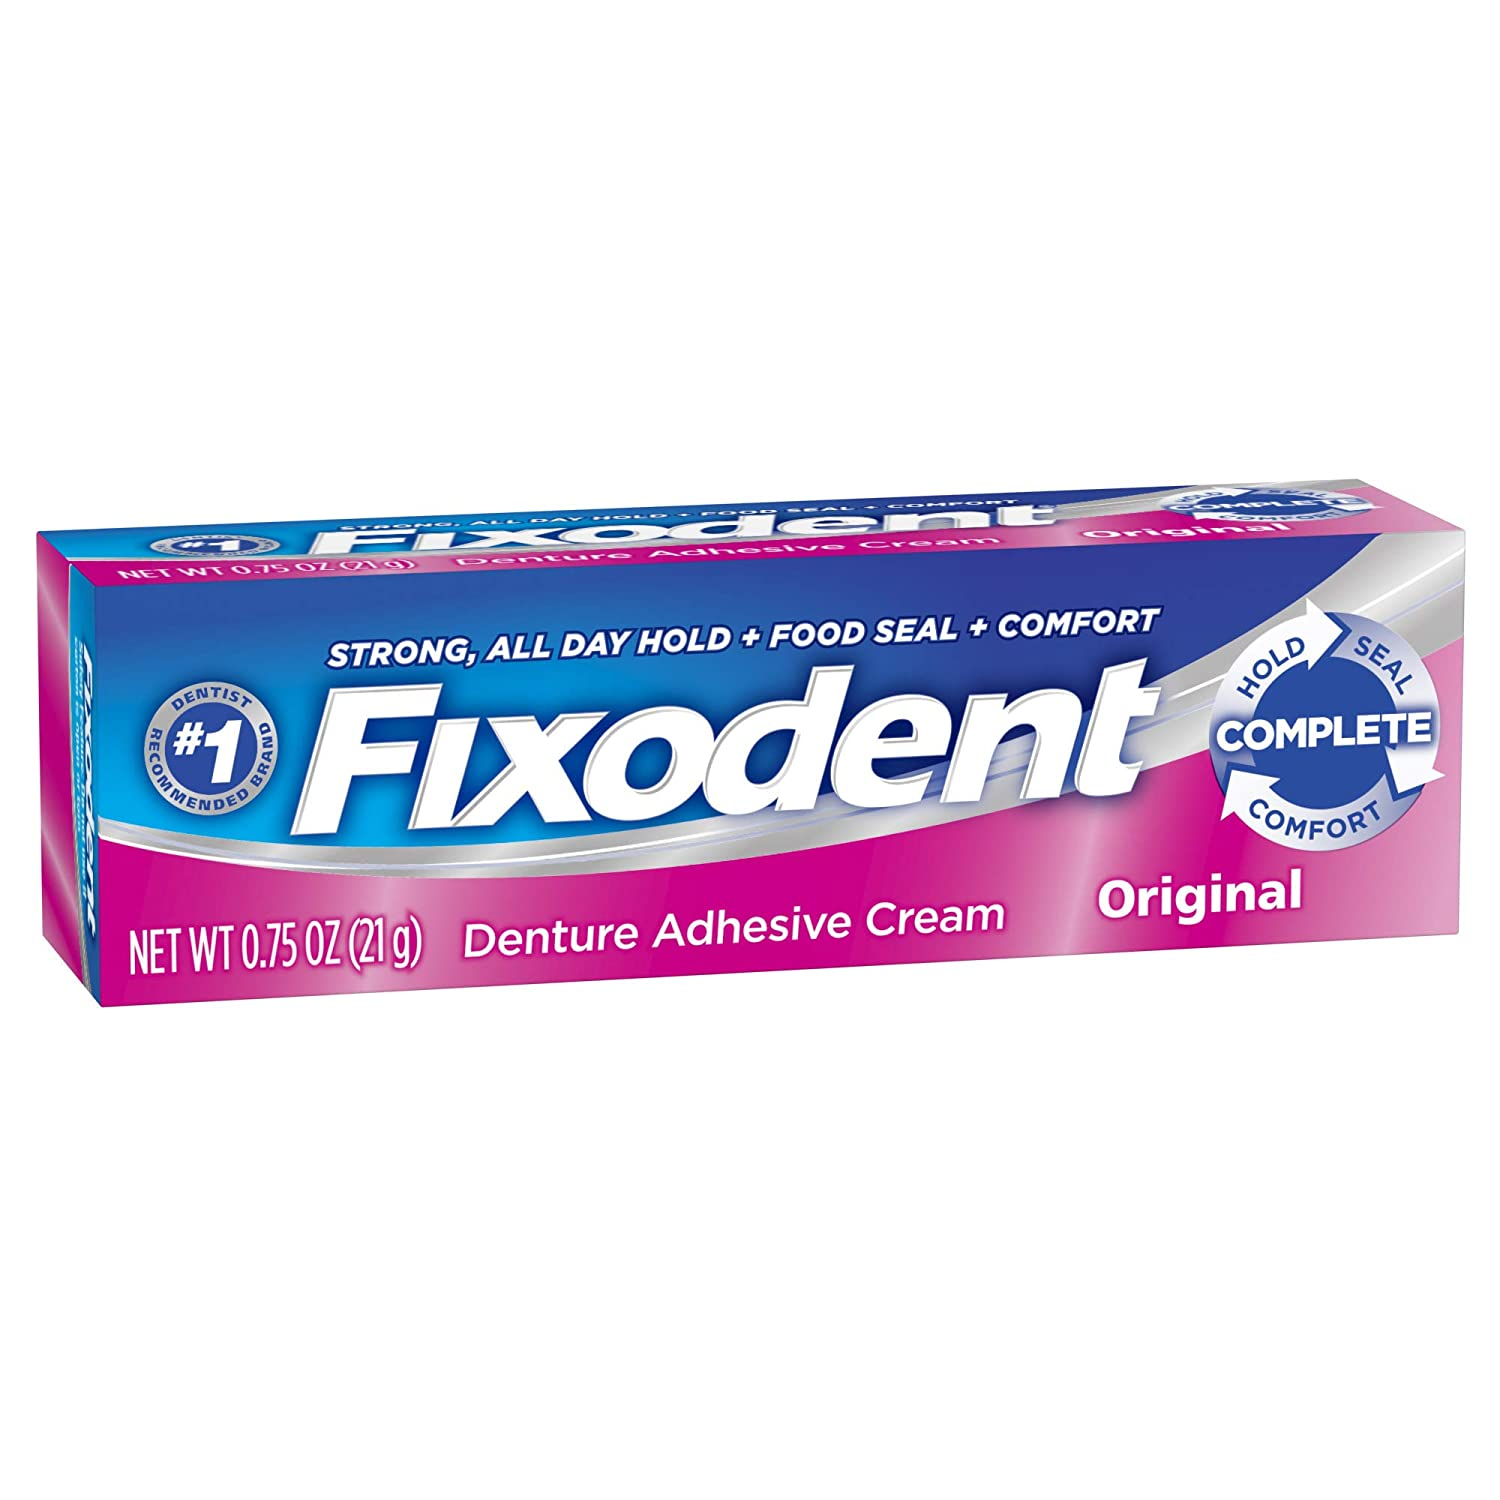 Fixodent denture adhesive cream, original, strong and long hold - 0.75 oz PH30037